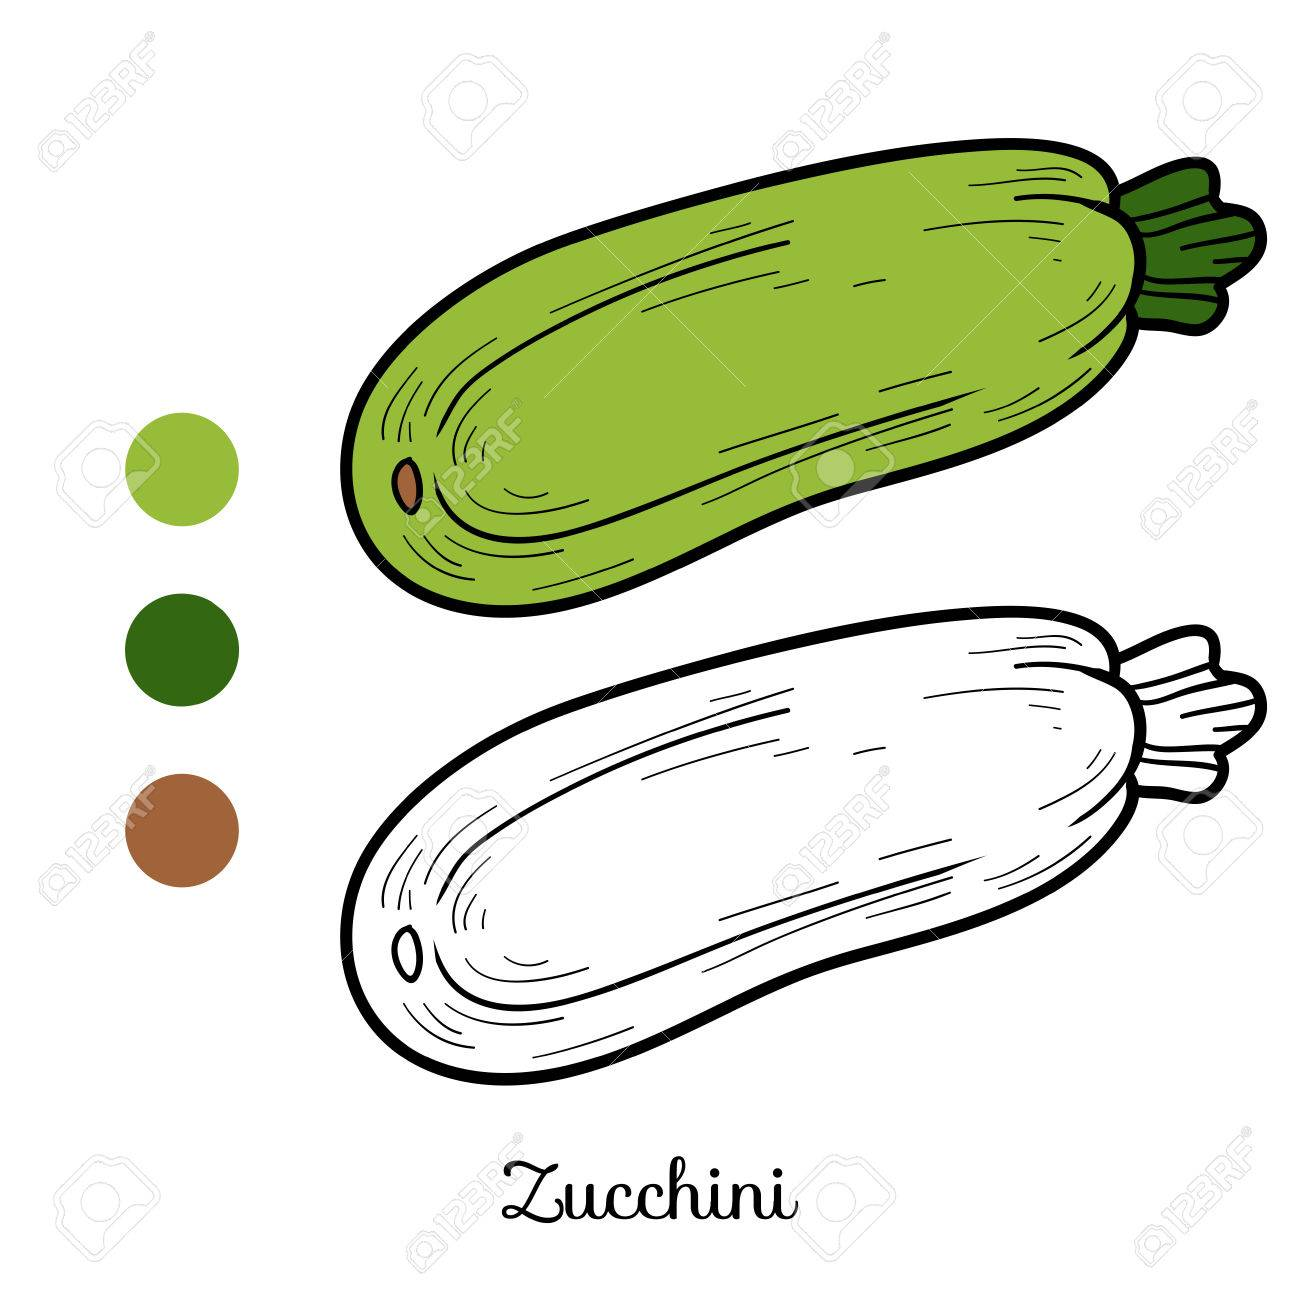 Coloring Book For Children: Fruits And Vegetables (zucchini) Royalty ...